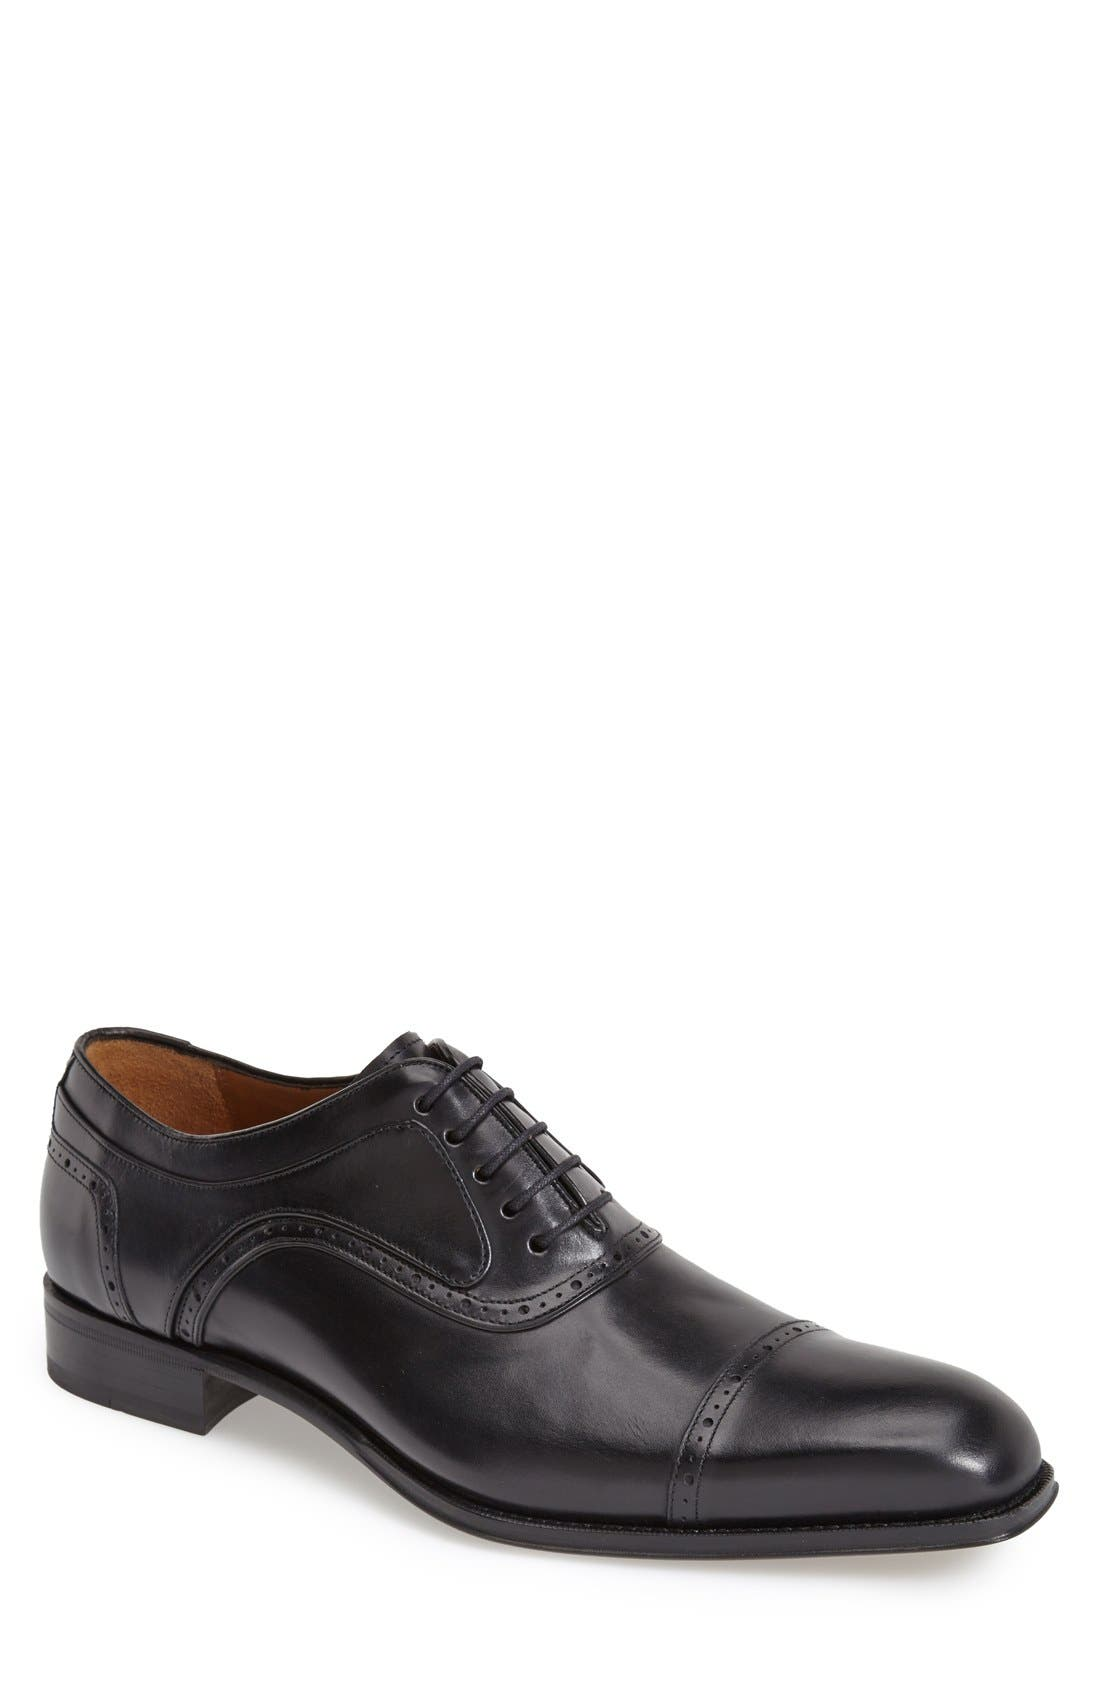 MEZLAN 'March' Cap Toe Oxford, Main, color, 001